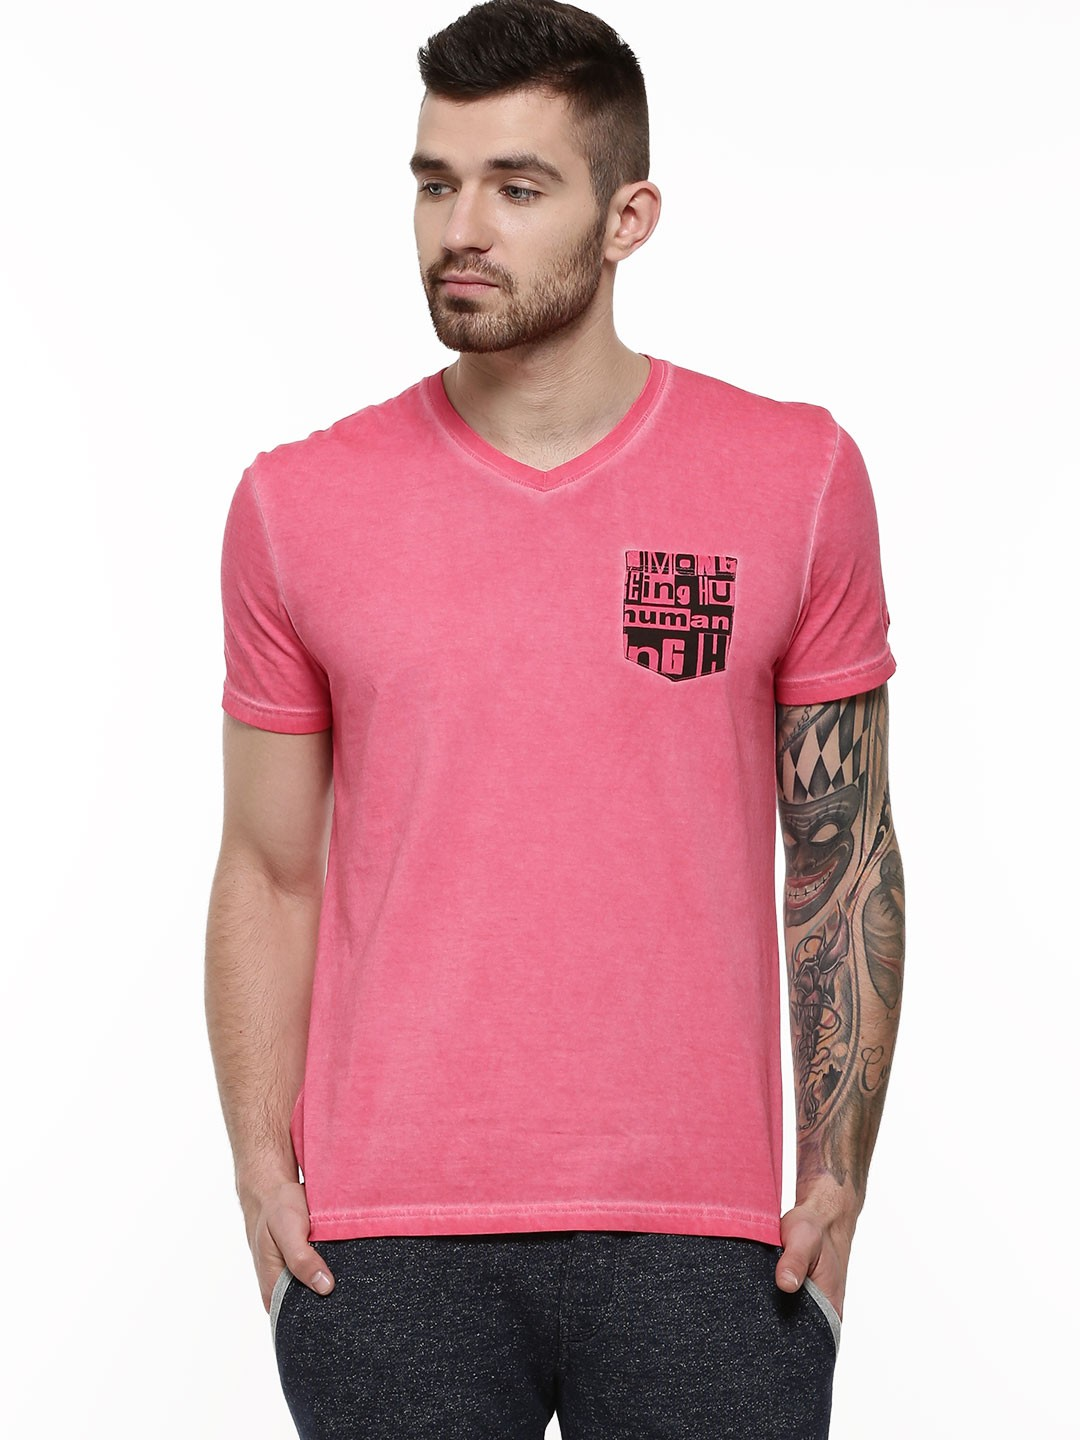 Buy being human oil wash t shirt with contrast pocket for for Being human t shirts buy online india